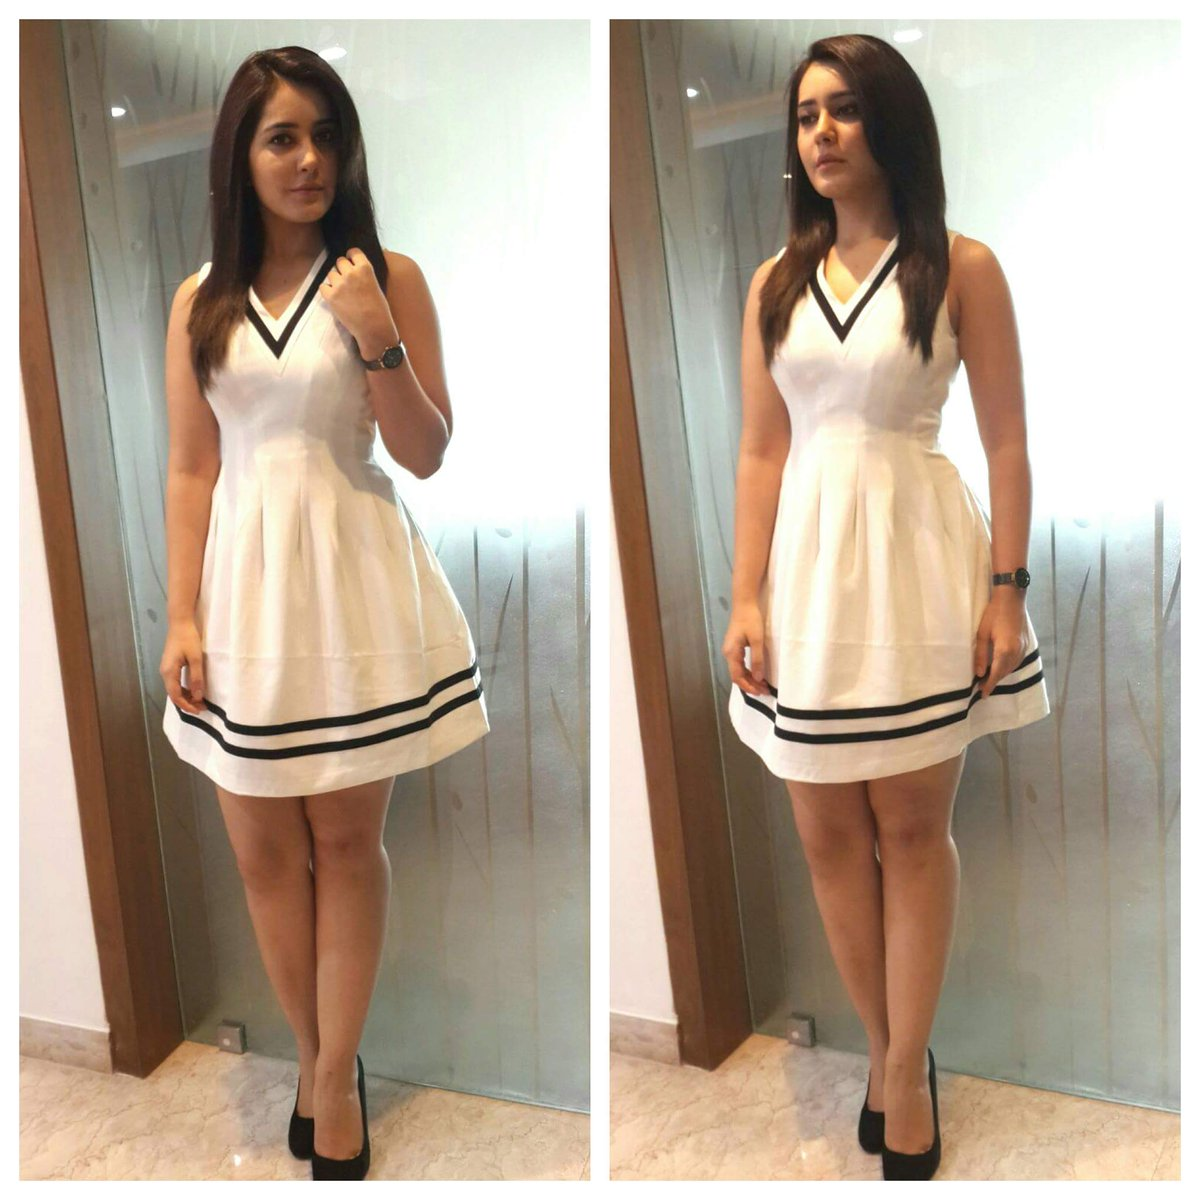 Raashi Khanna in a short white dress at the promotions for Bengal Tiger. Raashi Khanna too has shown her most sensual side in Bengal tiger.Hot raashi Khanna in Black, Raashi Khanna in Bengal tiger, Hot and sensual Raashi Khanna, Next top heroine Raashi Khanna,